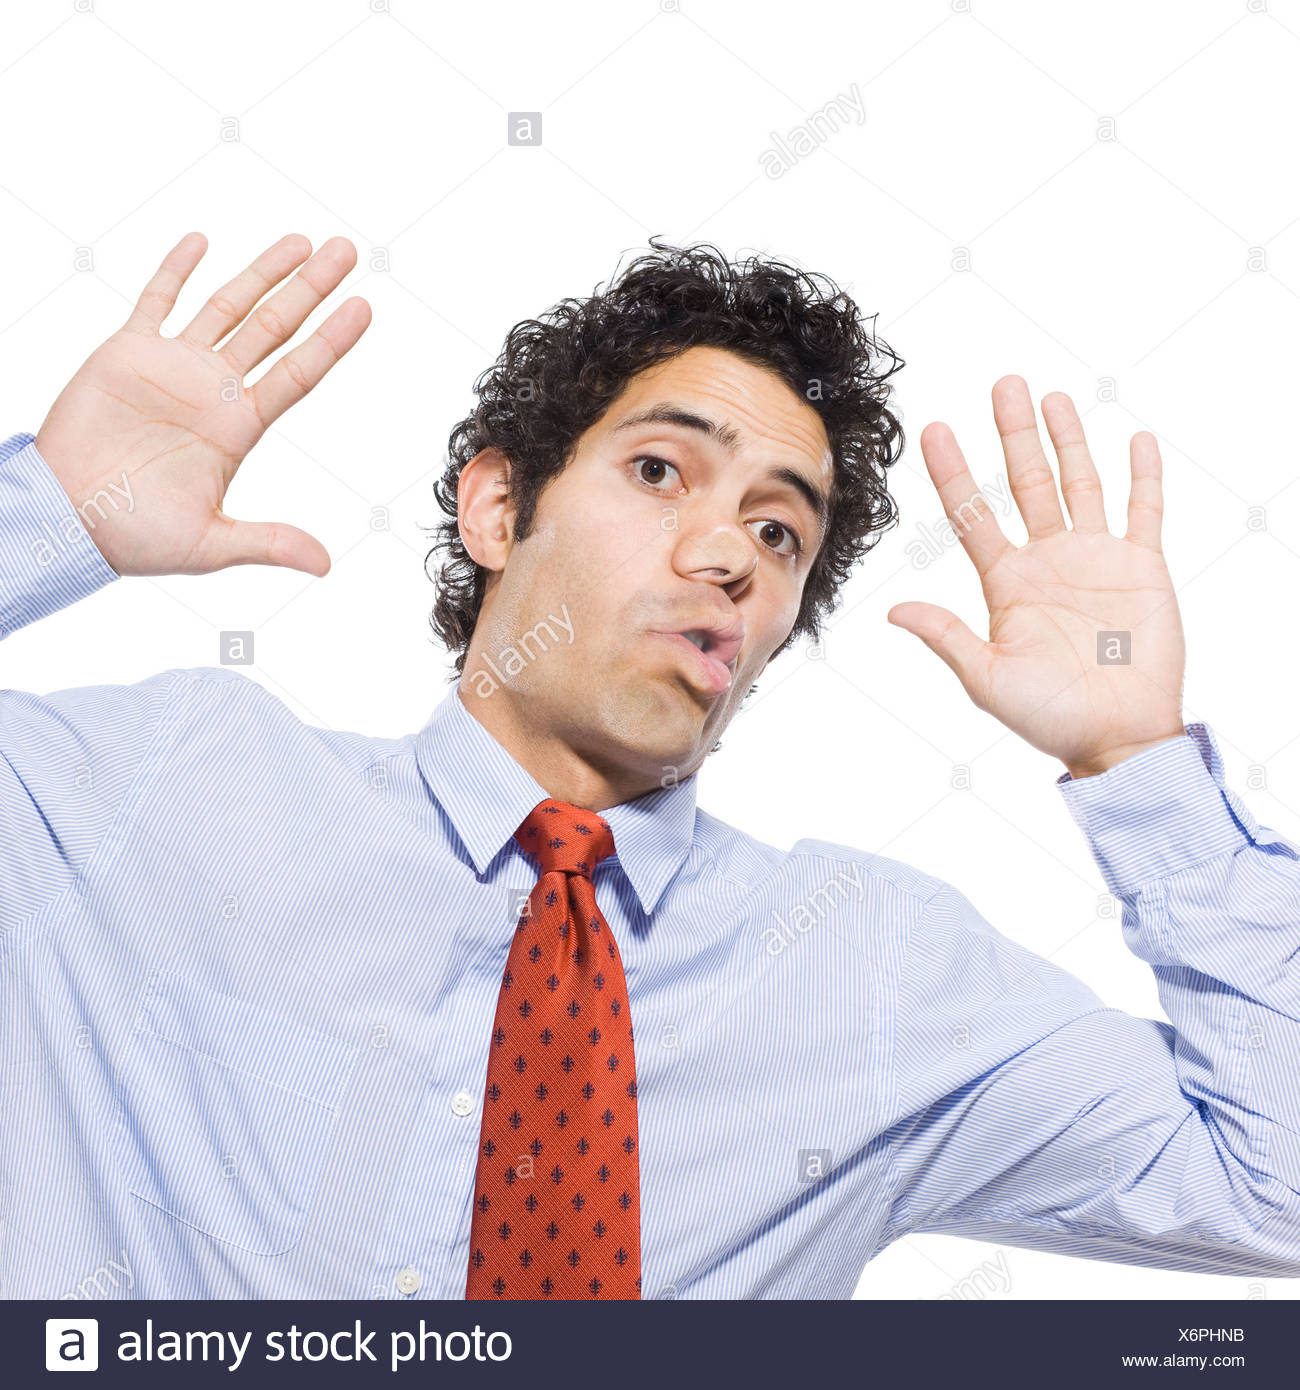 Man with face pressed up against window, studio shot - Stock Image